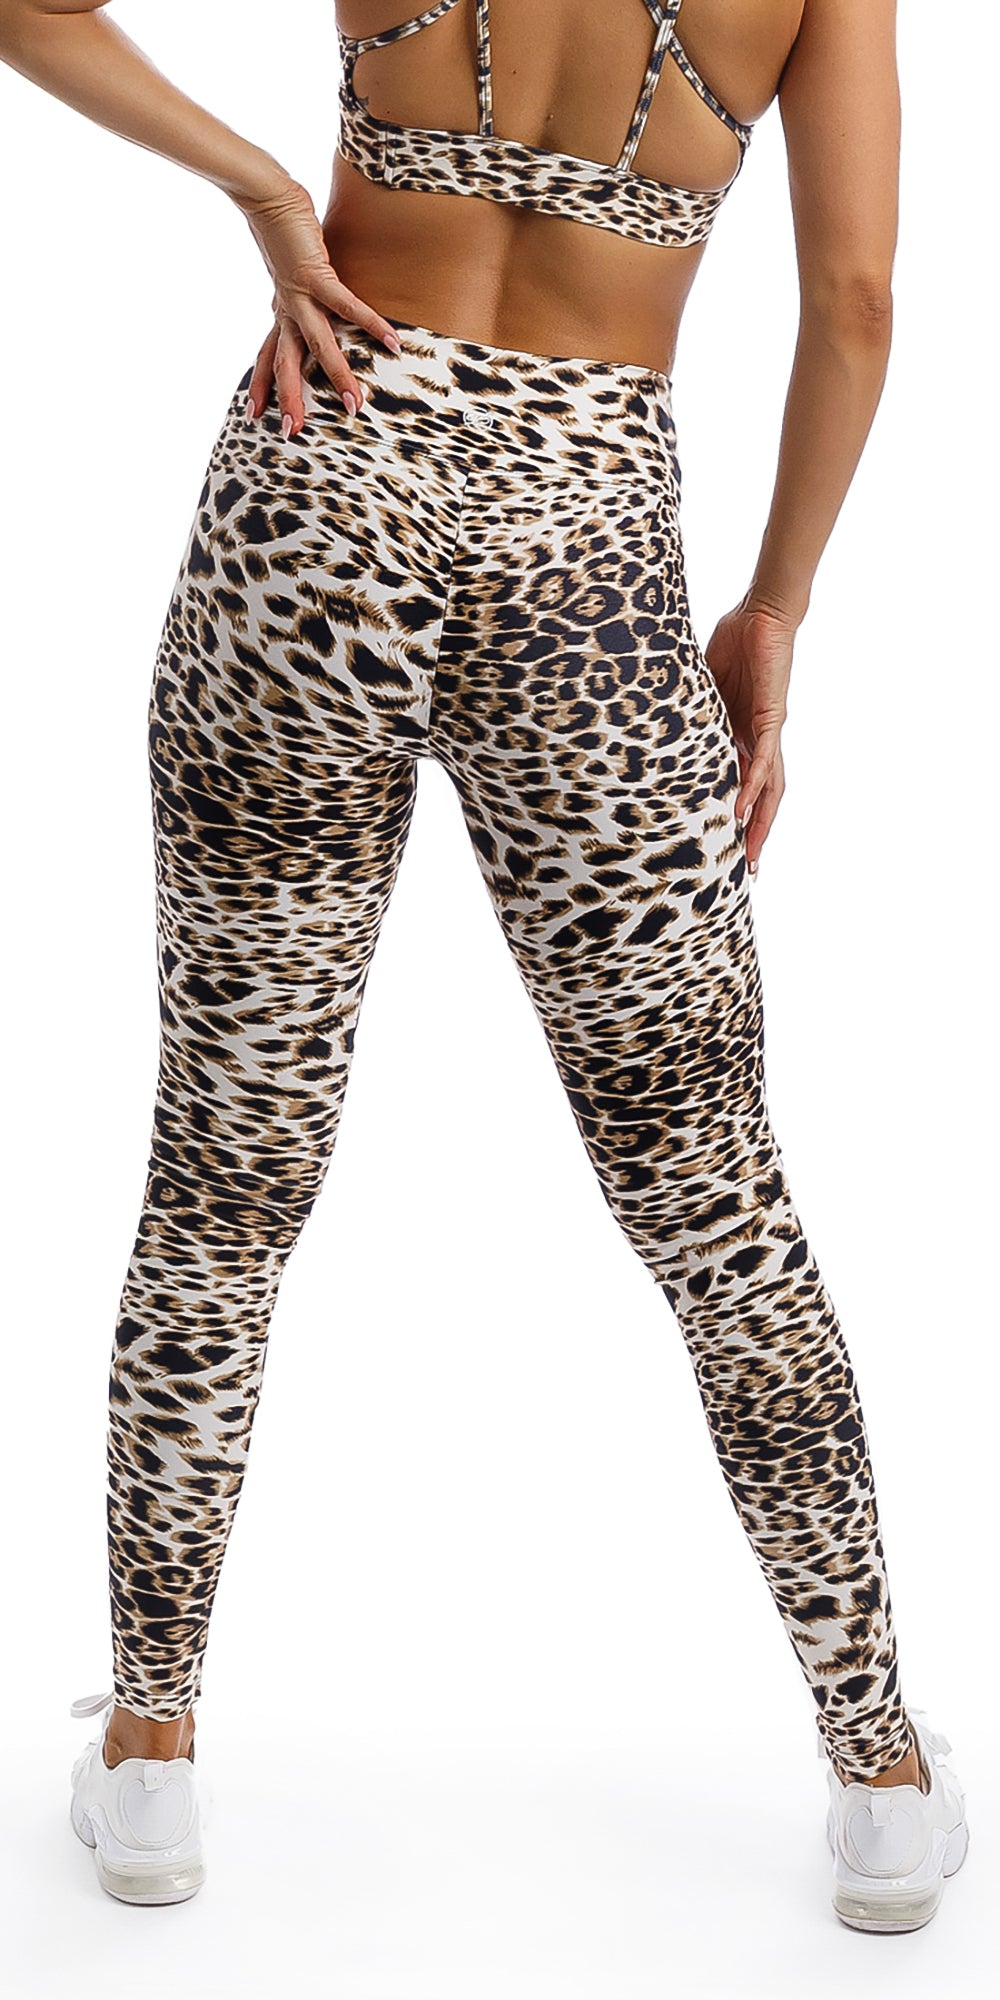 Rear view of lady wearing brown and white cheetah print extra long leggings & matching diamond back bra